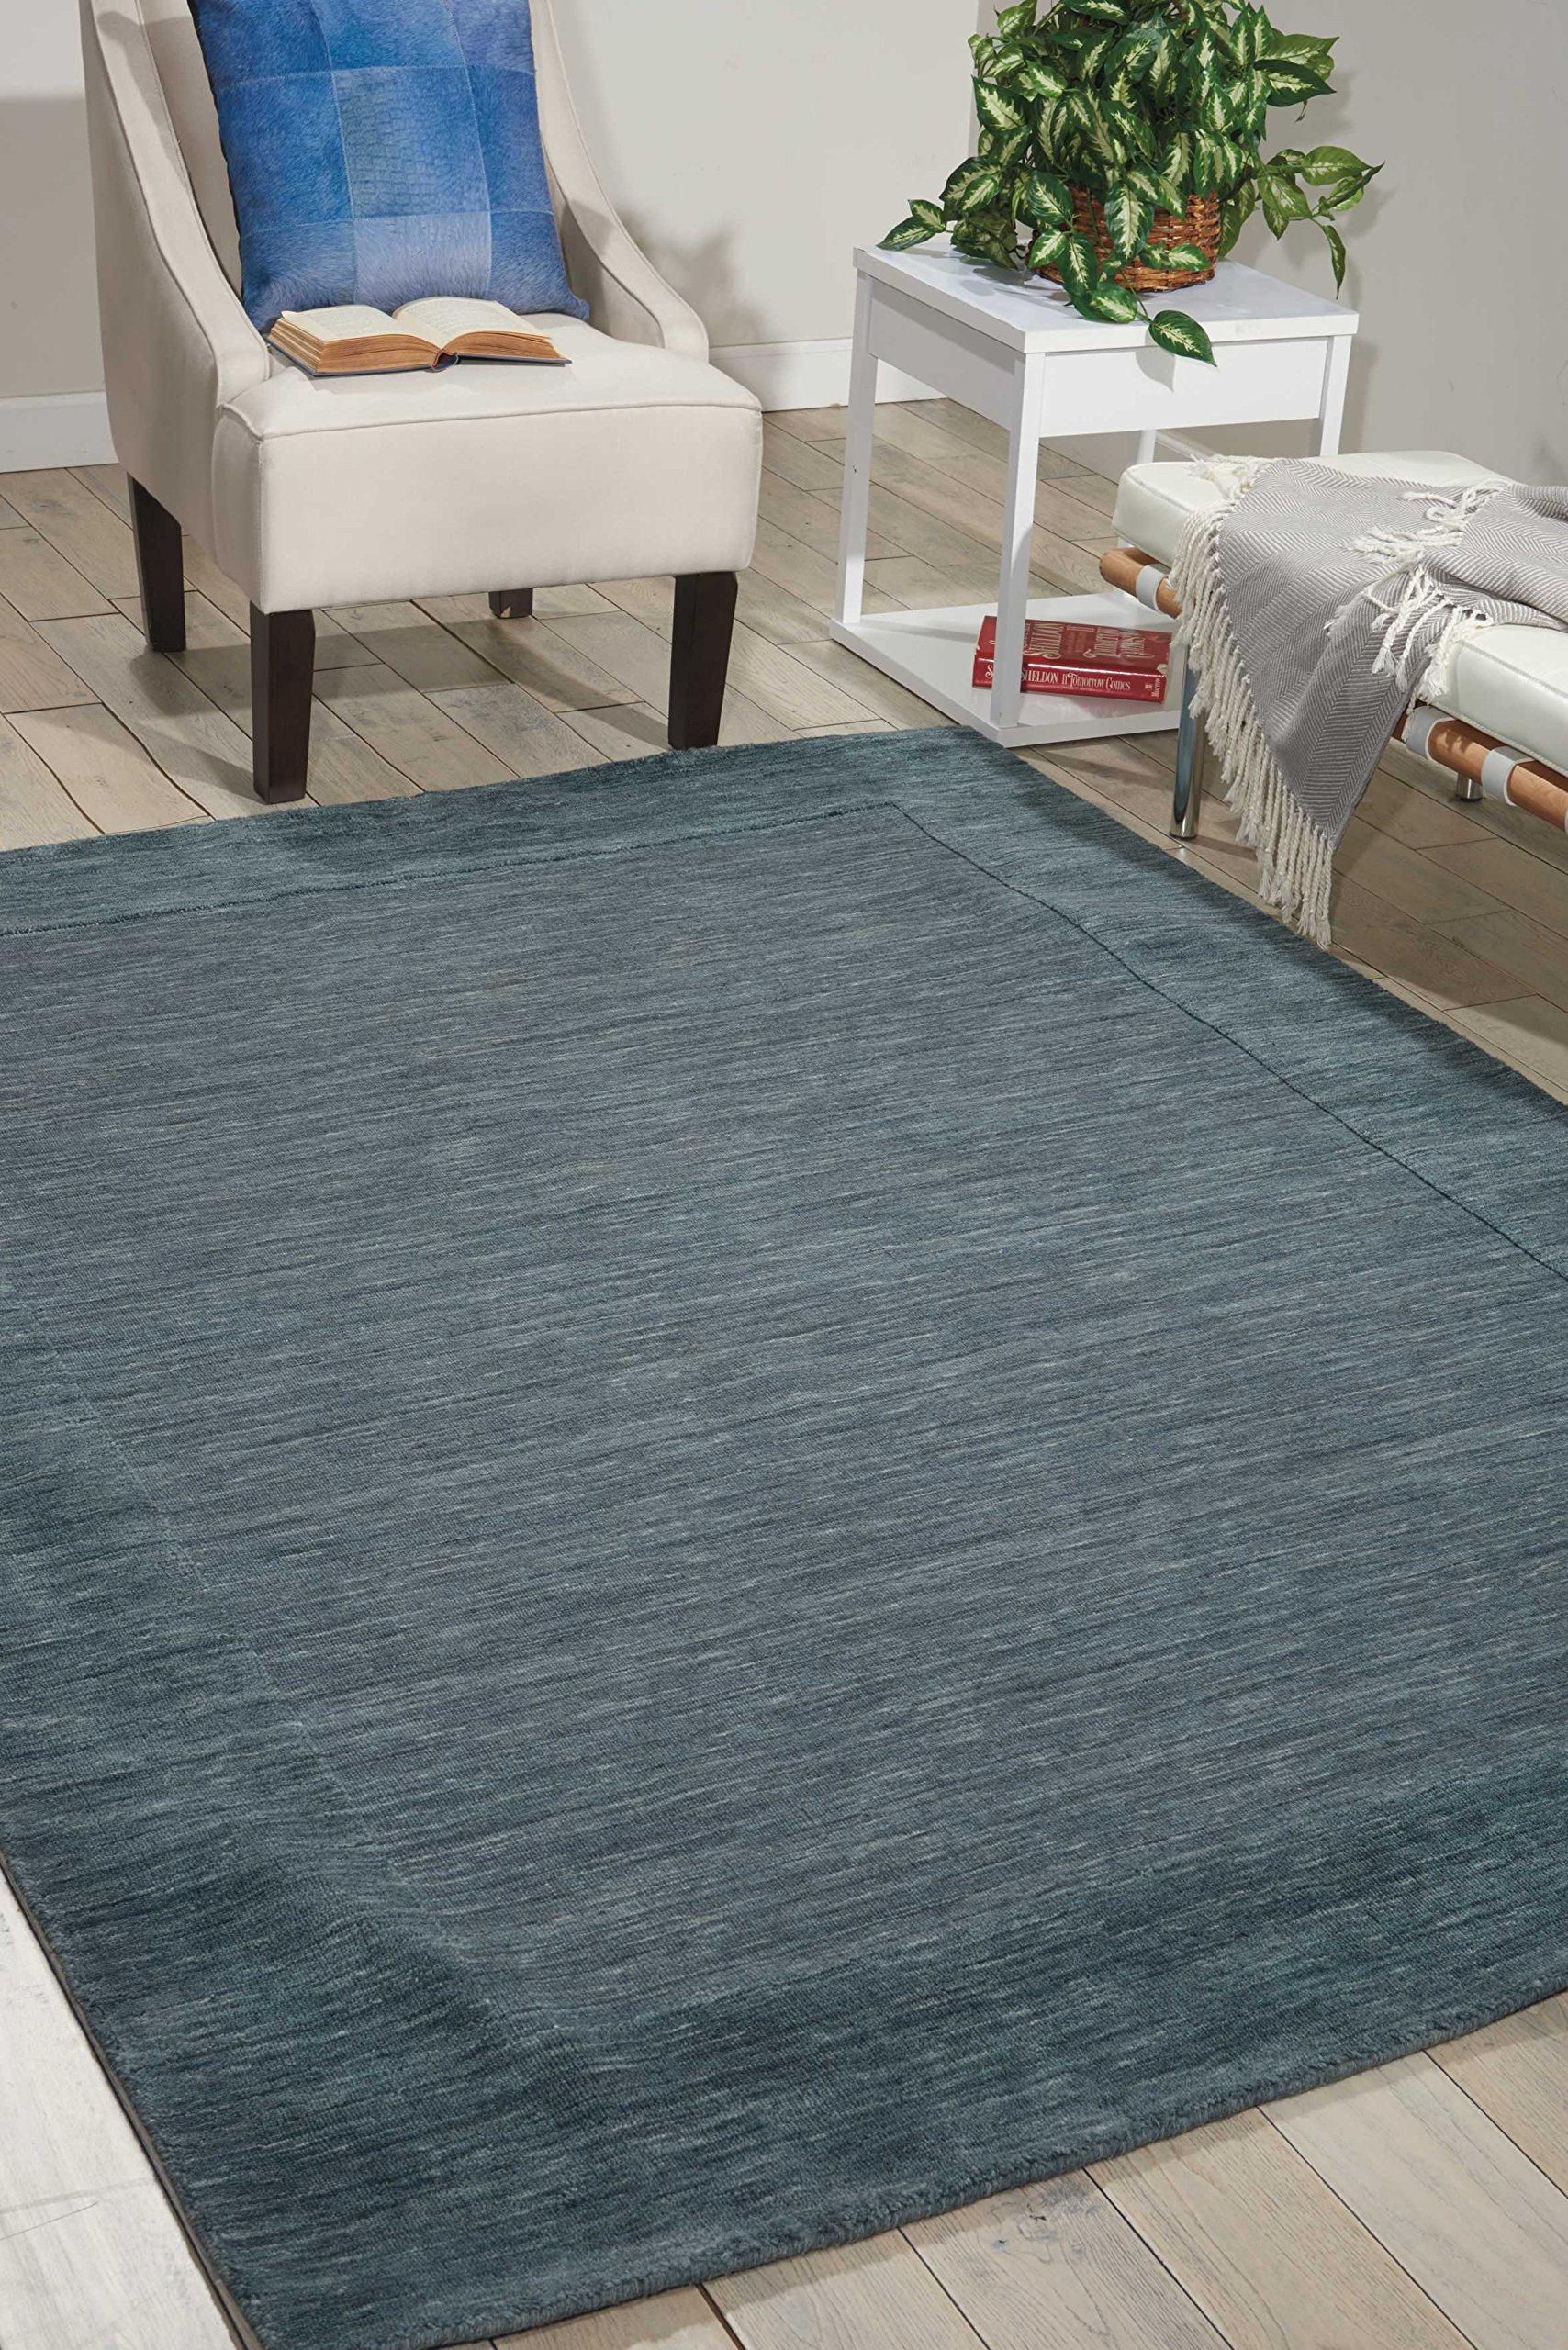 Nourison Bbl1 Ripple (RIP01) Spa Rectangle Area Rug, 3-Feet 6-Inches by 5-Feet 6-Inches (3'6'' x 5'6'')